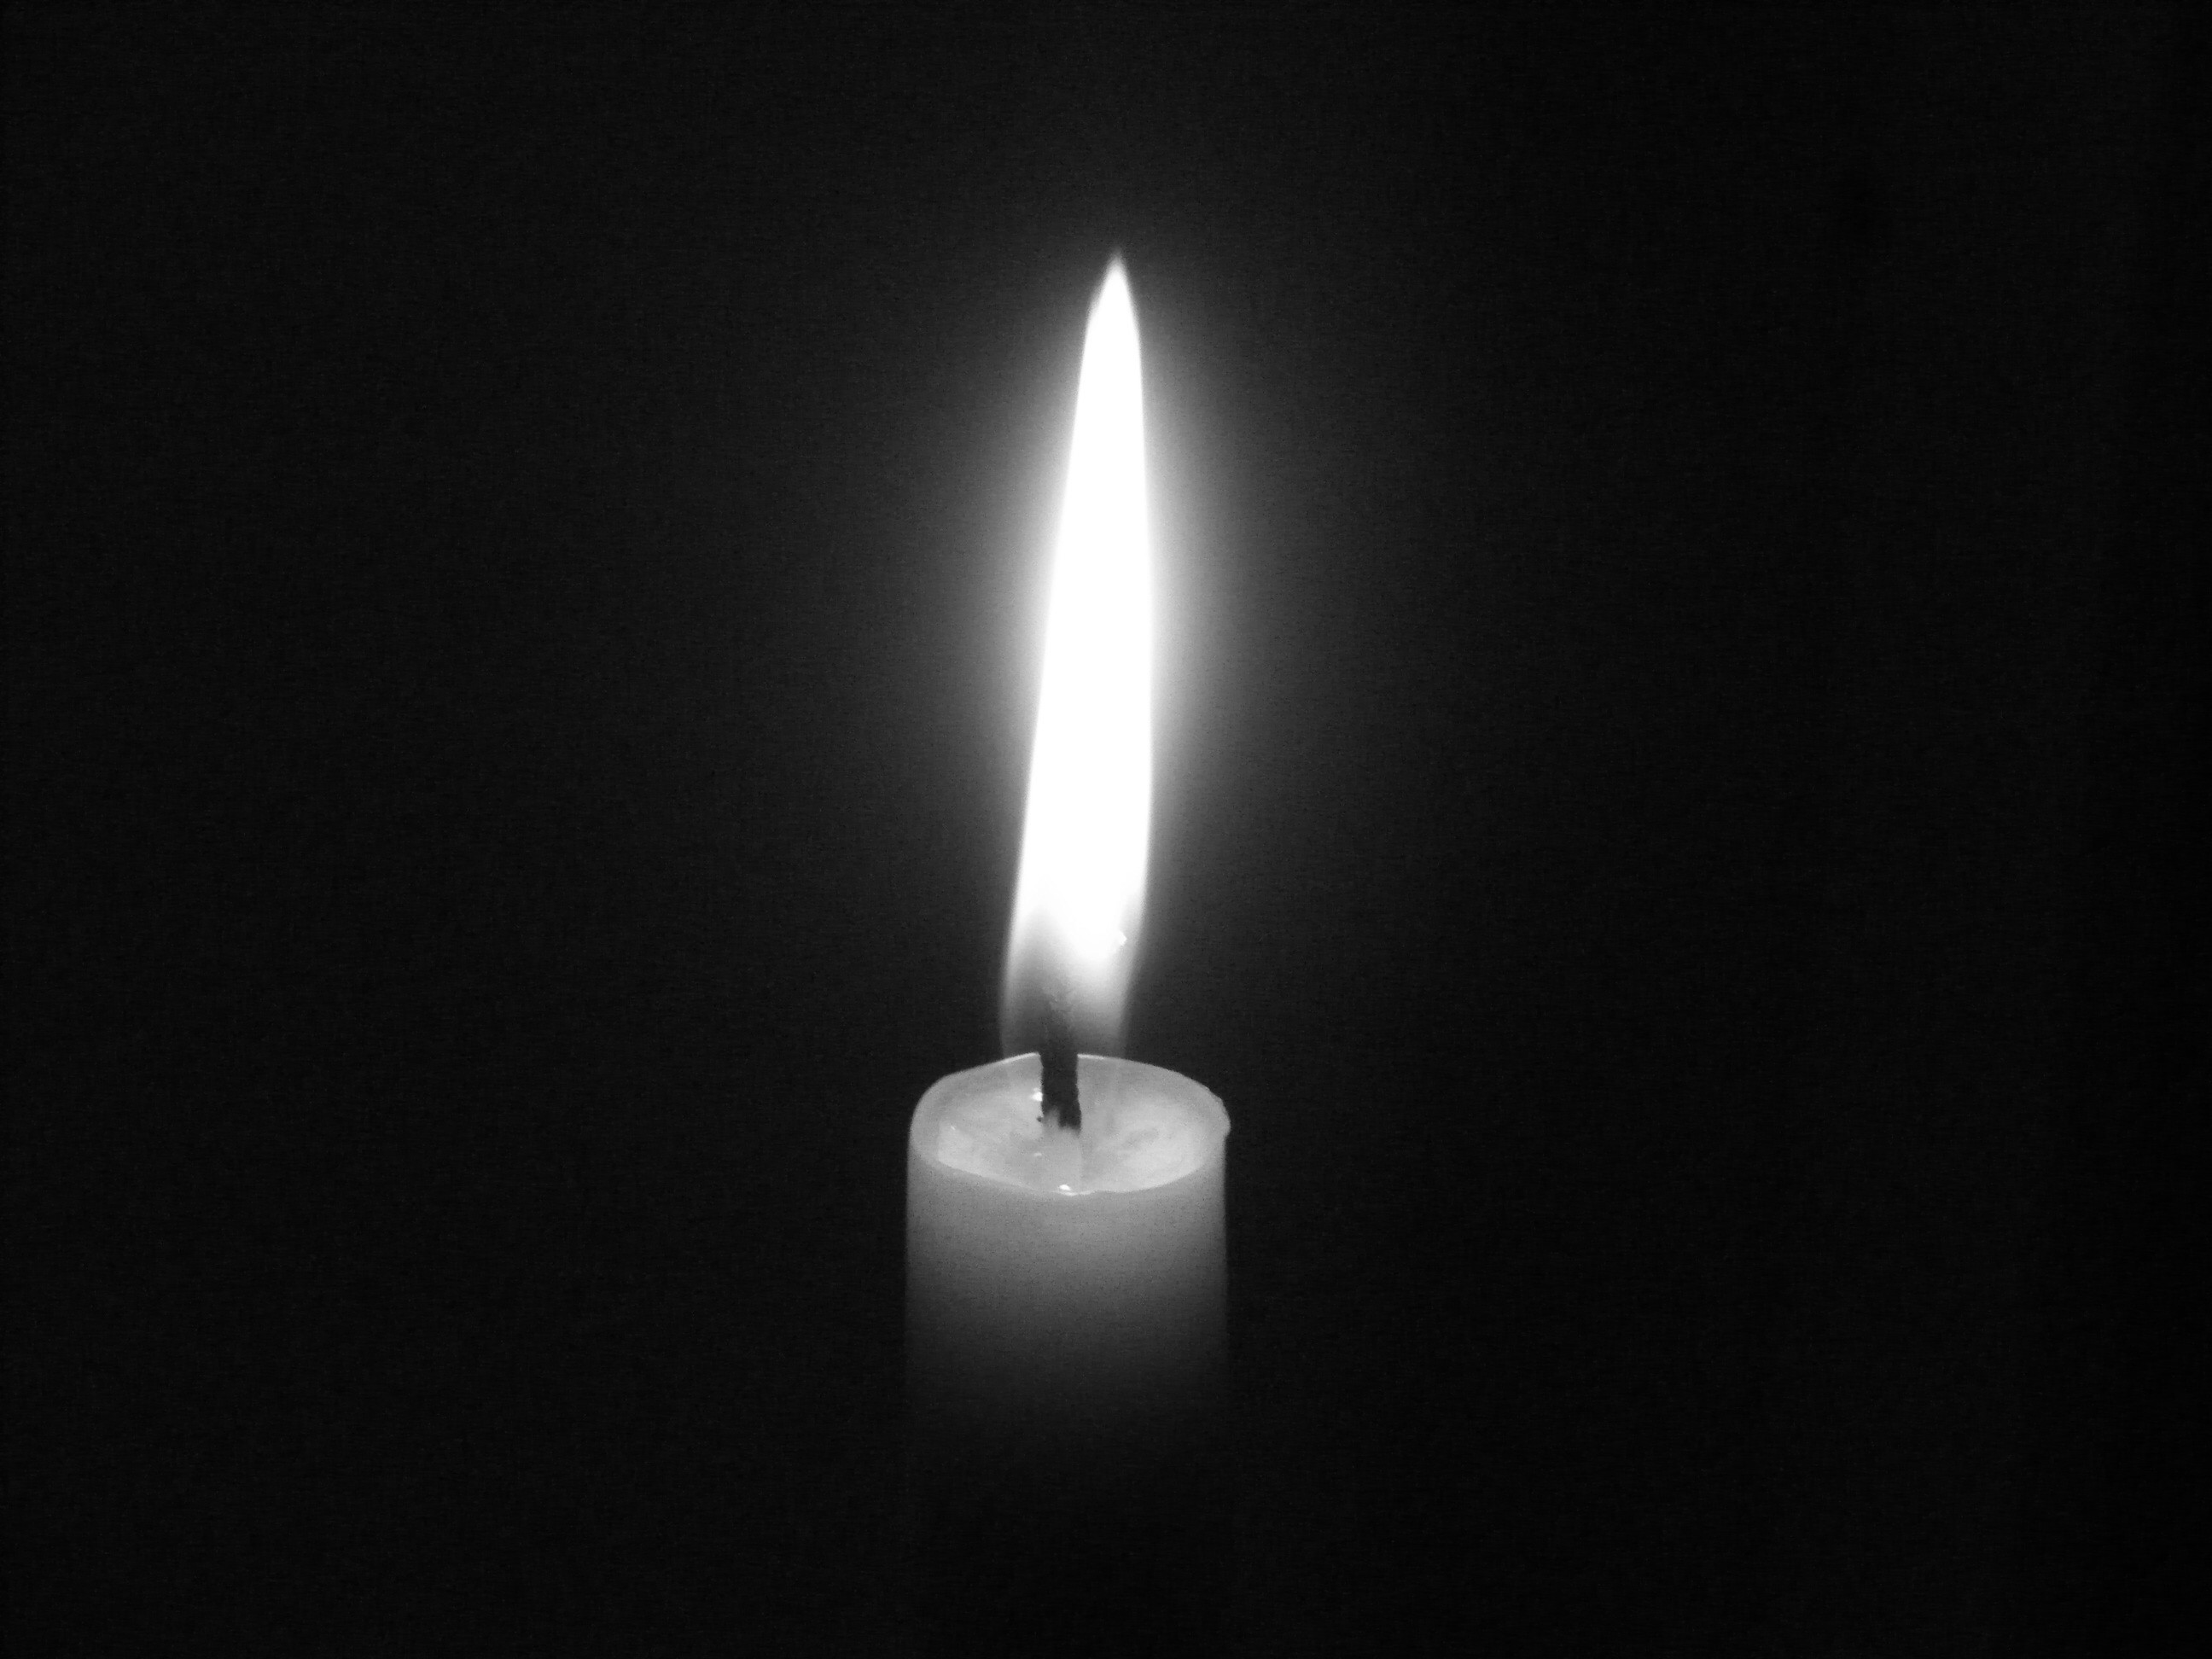 2592x1944 candle-light-wallpaper-hd-29